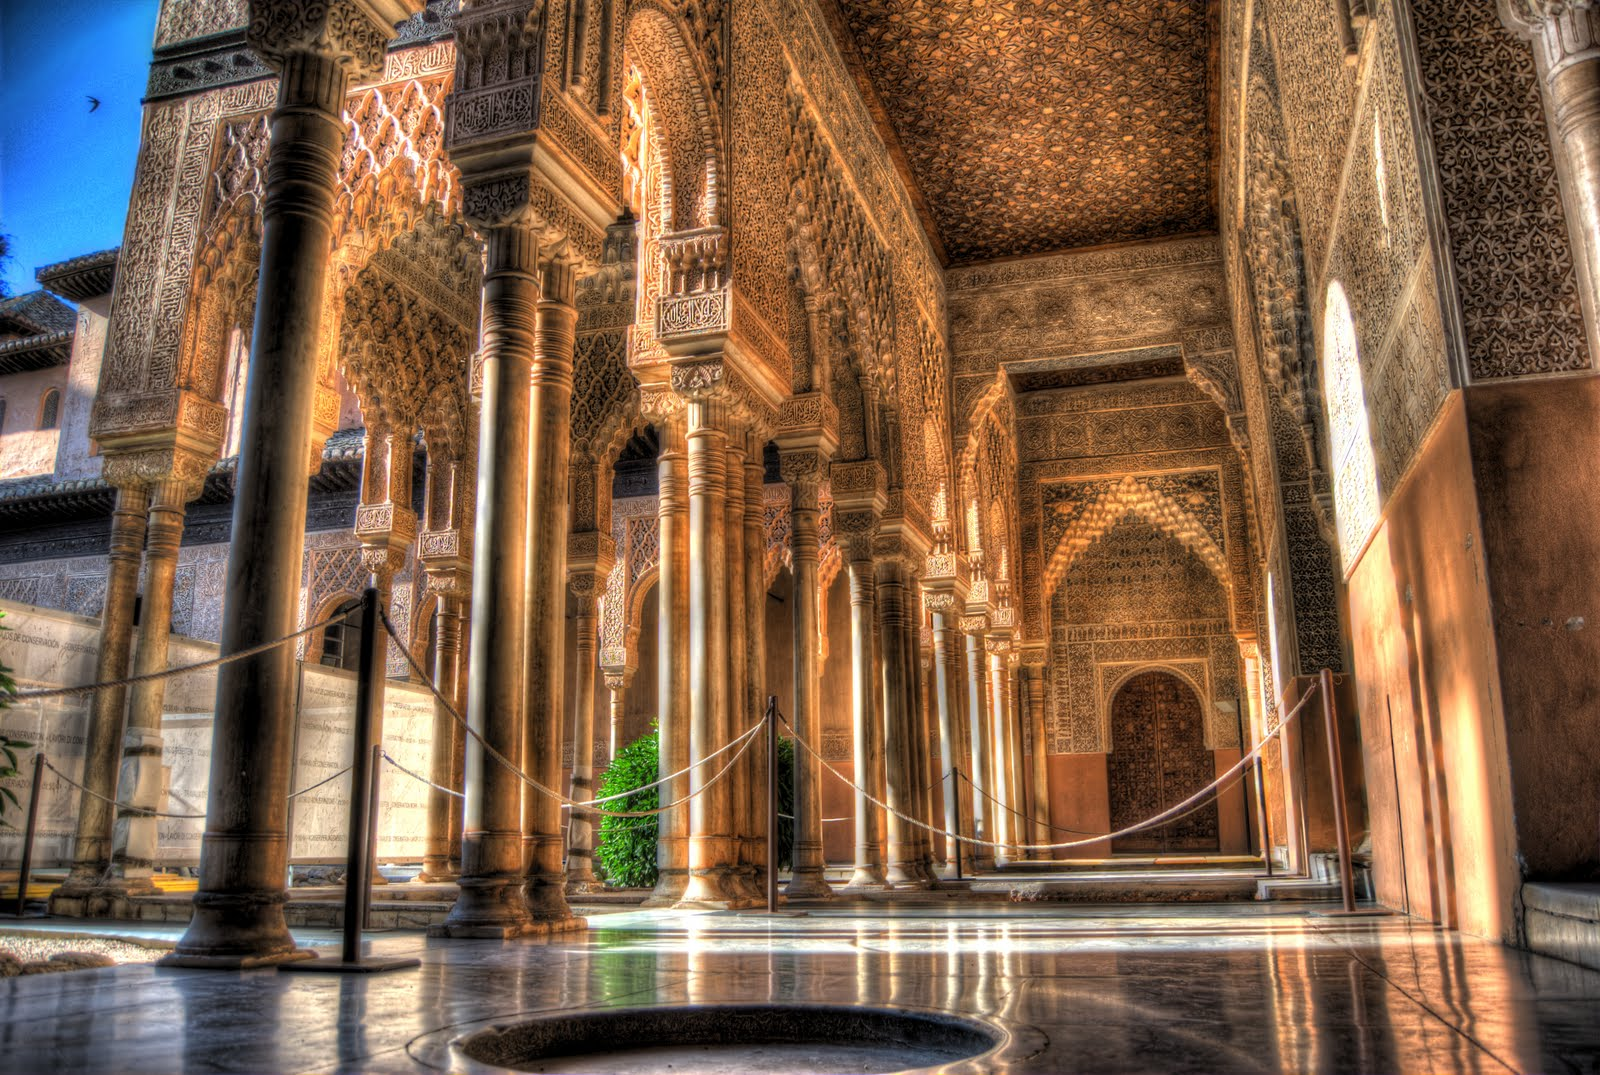 Milan Kreuschitz HDR Photography: The Alhambra, Granada, Spain